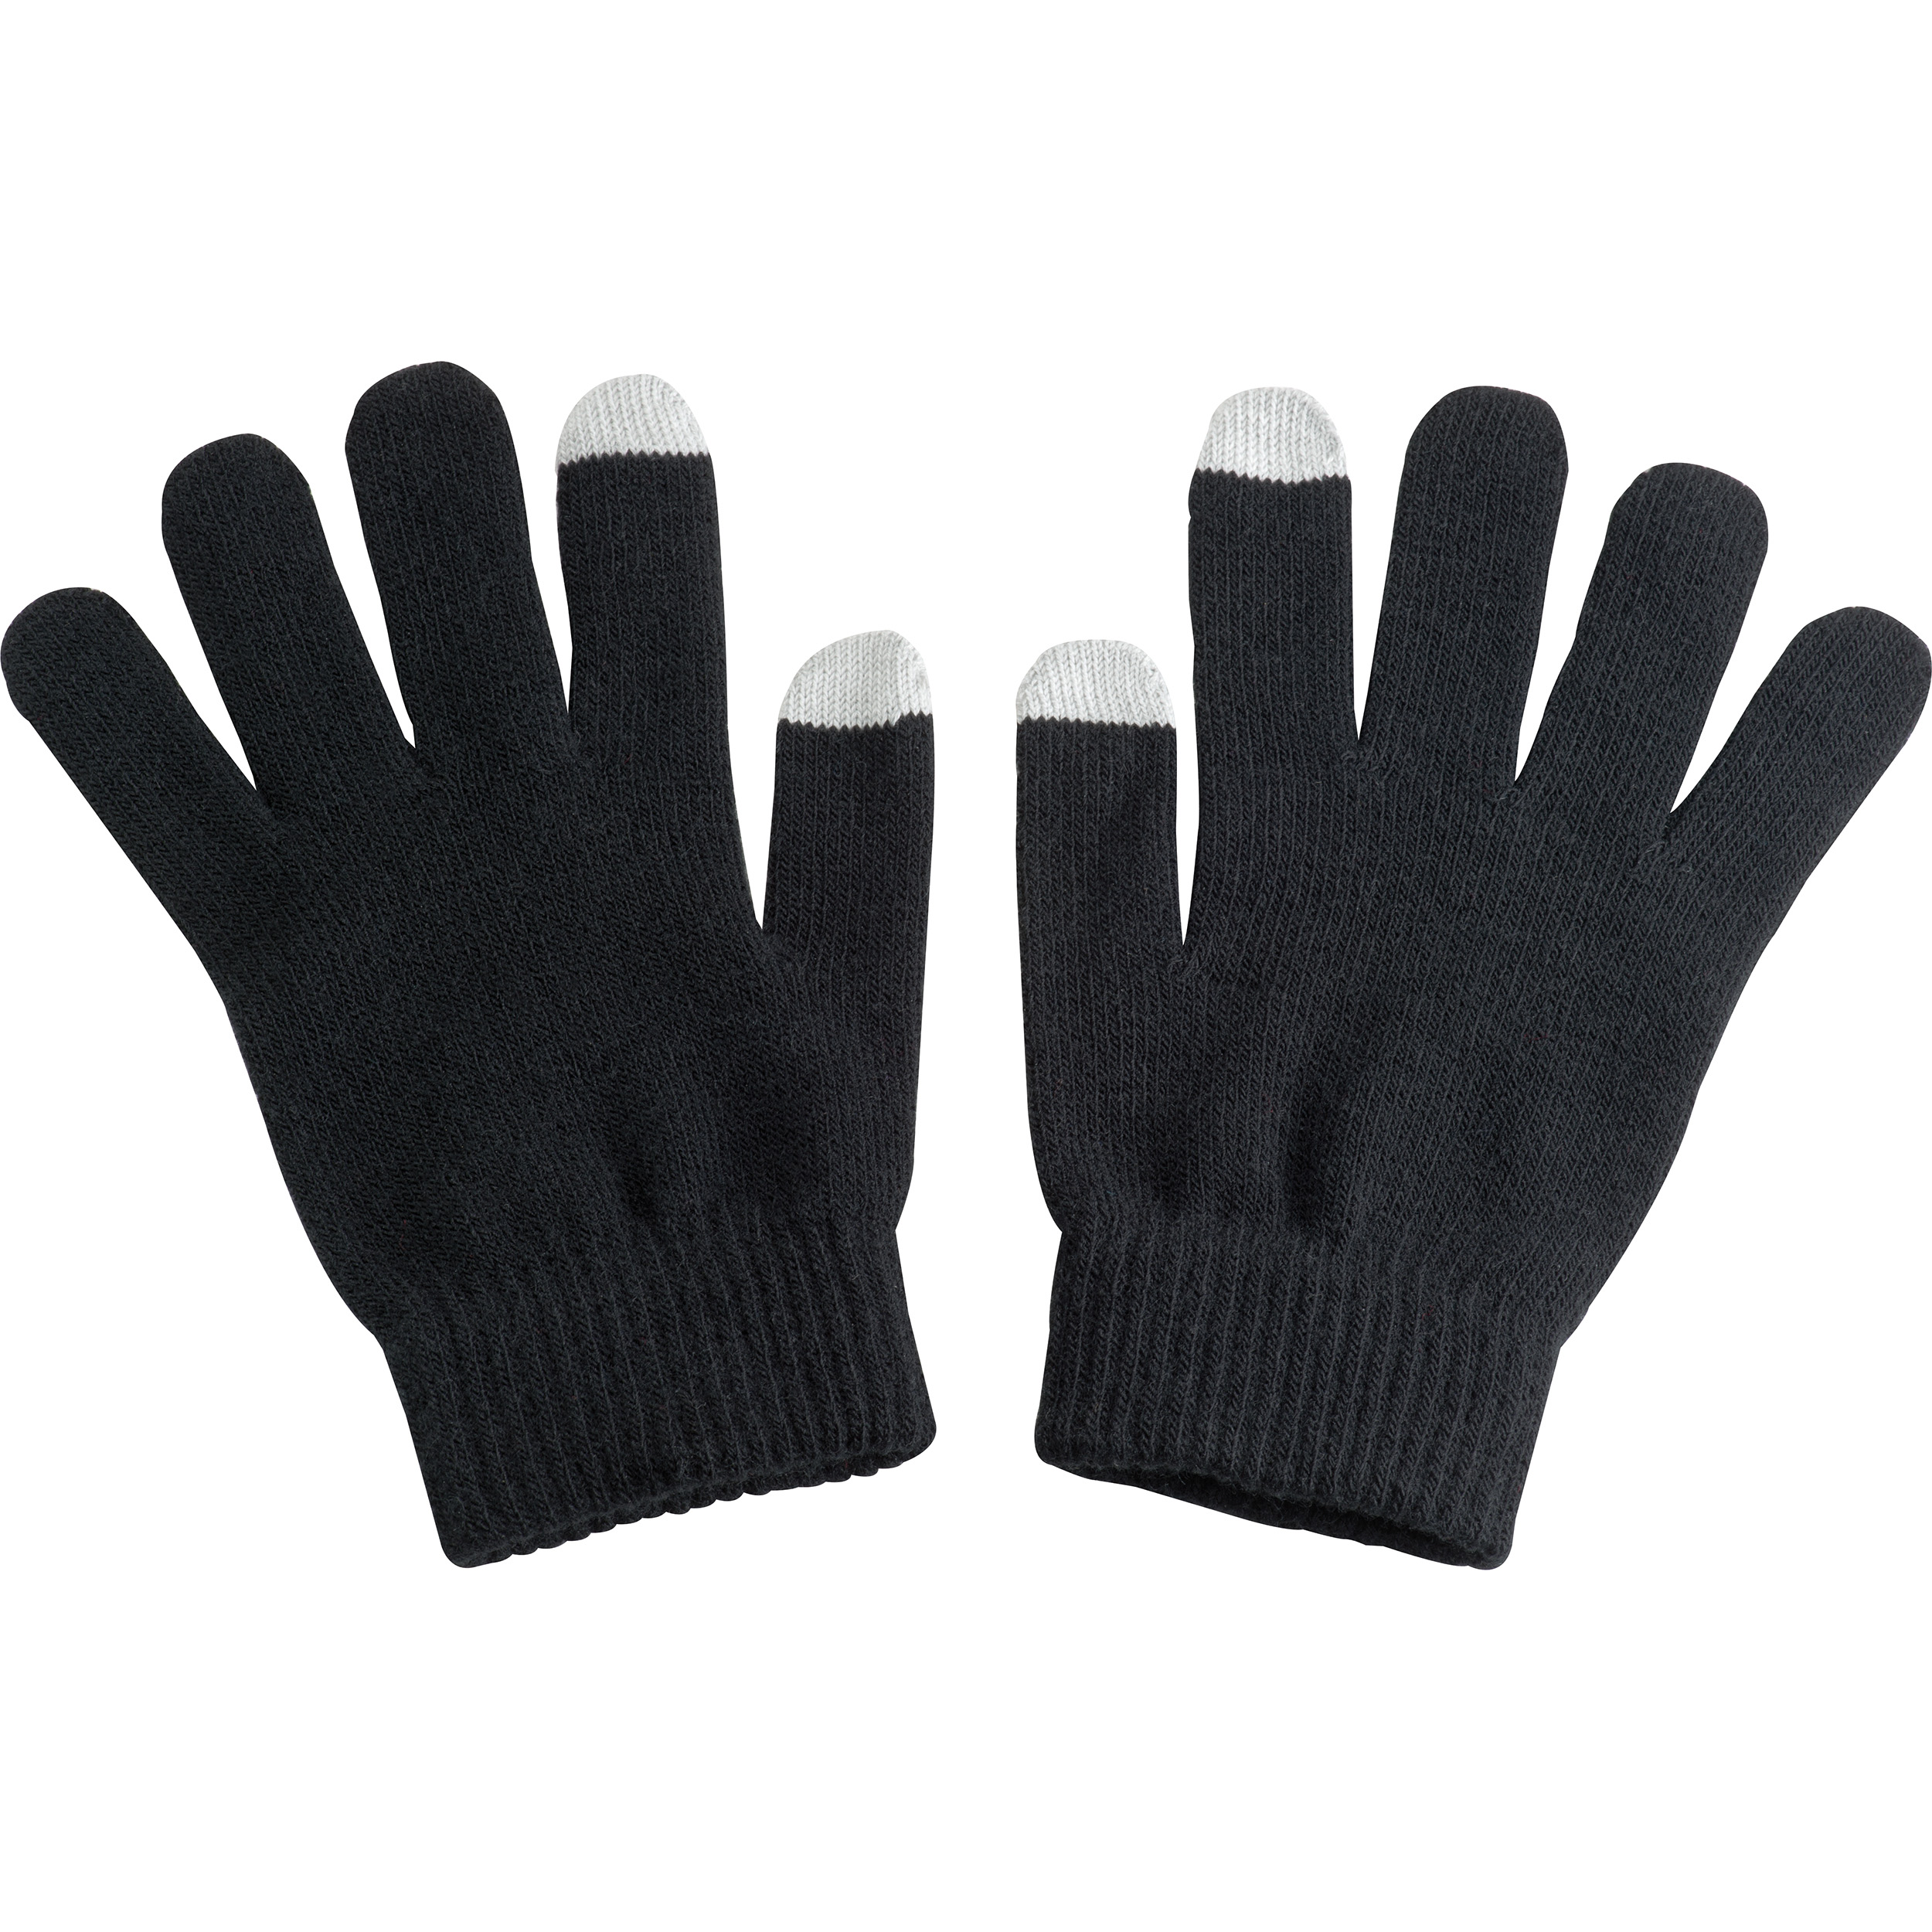 Acrylic gloves with touch tops on two fingers